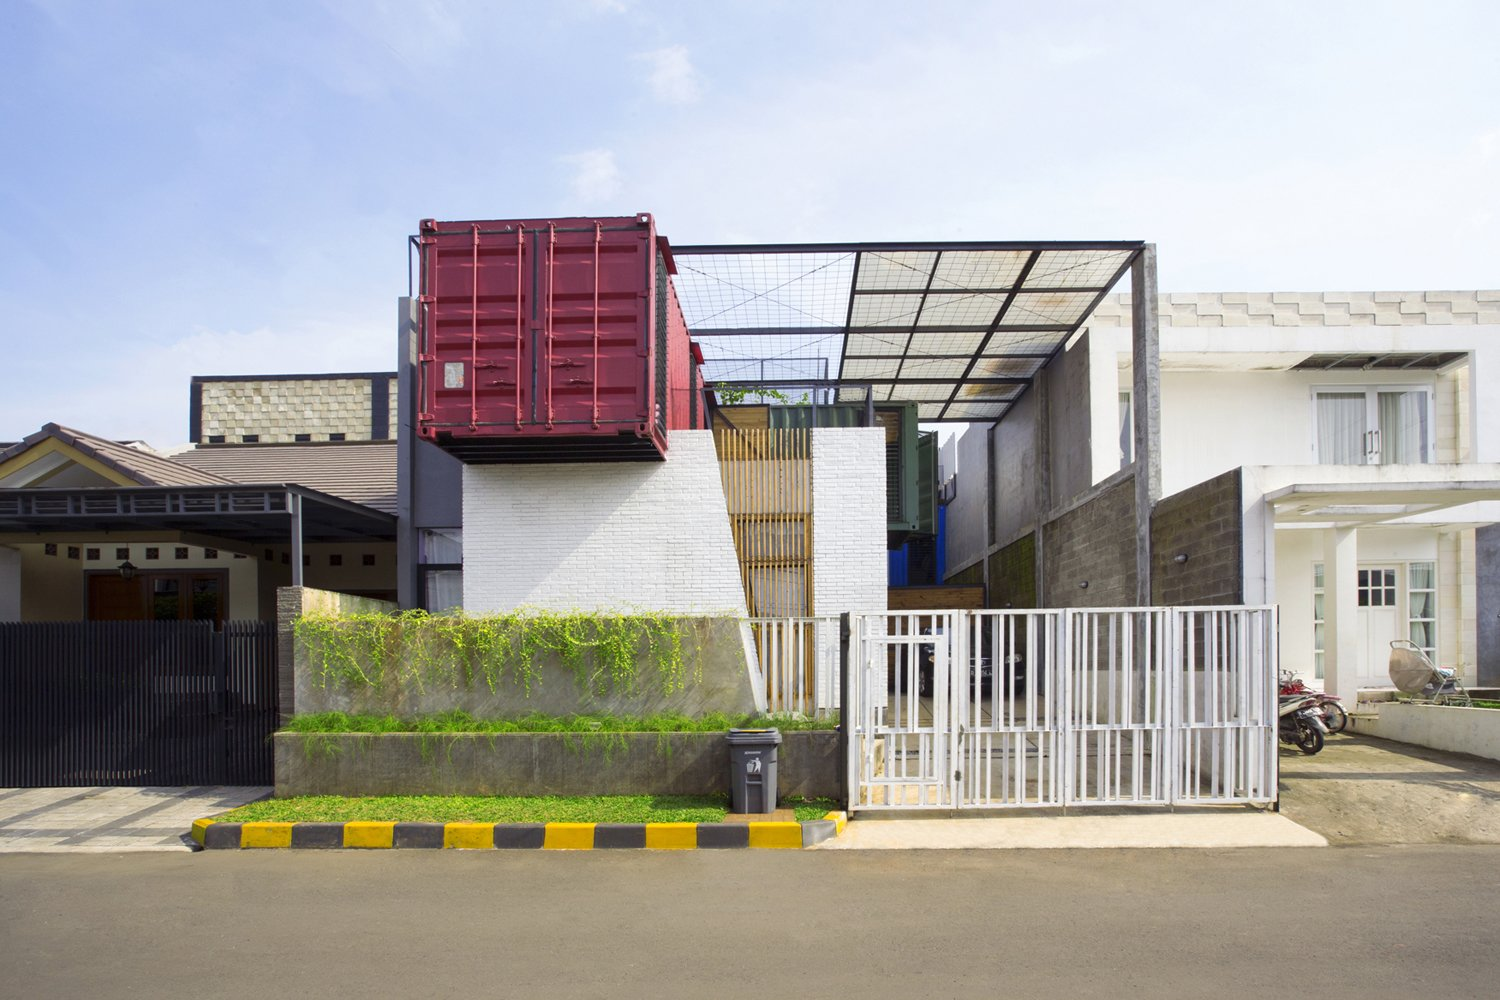 Atelier Riri devised creative ways to make living inside a shipping container in Indonesia's tropical climate both comfortable and economical. The architects layered recycled pine, glass wool, and planter mesh on top of the home to help keep temperatures down. Tagged: Exterior and Shipping Container Building Type.  Shipping Containers by Dwell from How to Buy a Shipping Container